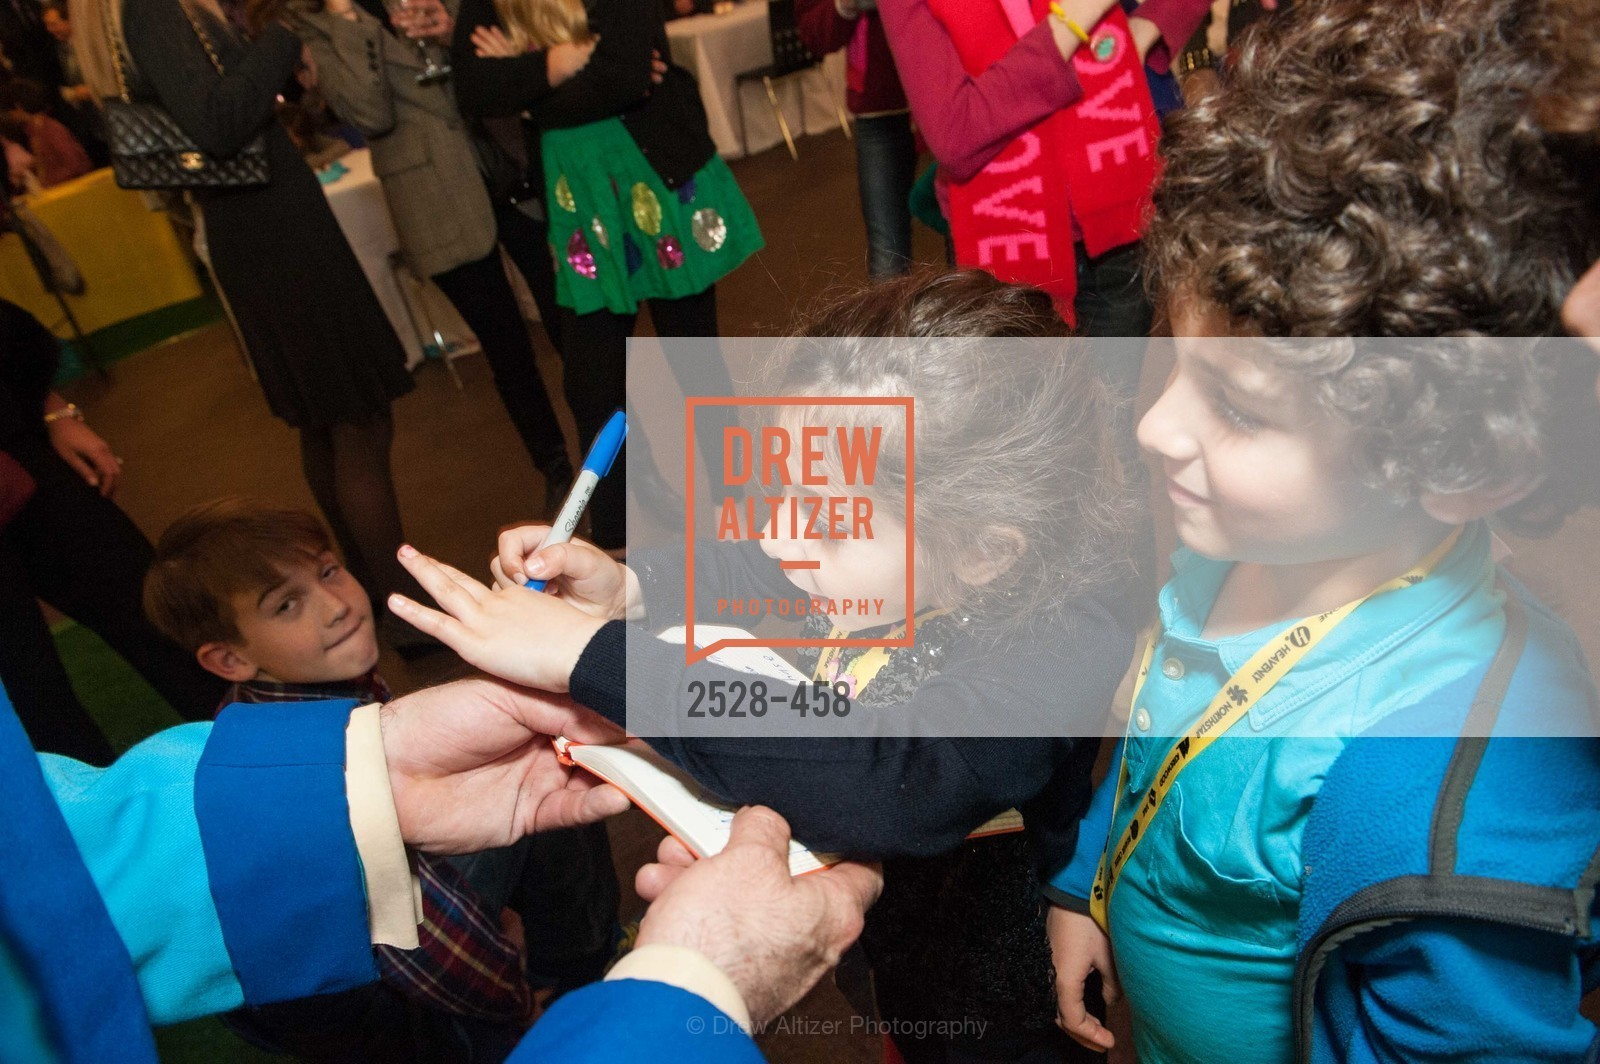 Sidney Fawson, Leo Fawson, Frank Rutchik, DE YOUNGSTERS A Bigger Family Party, US. US, January 10th, 2014,Drew Altizer, Drew Altizer Photography, full-service agency, private events, San Francisco photographer, photographer california